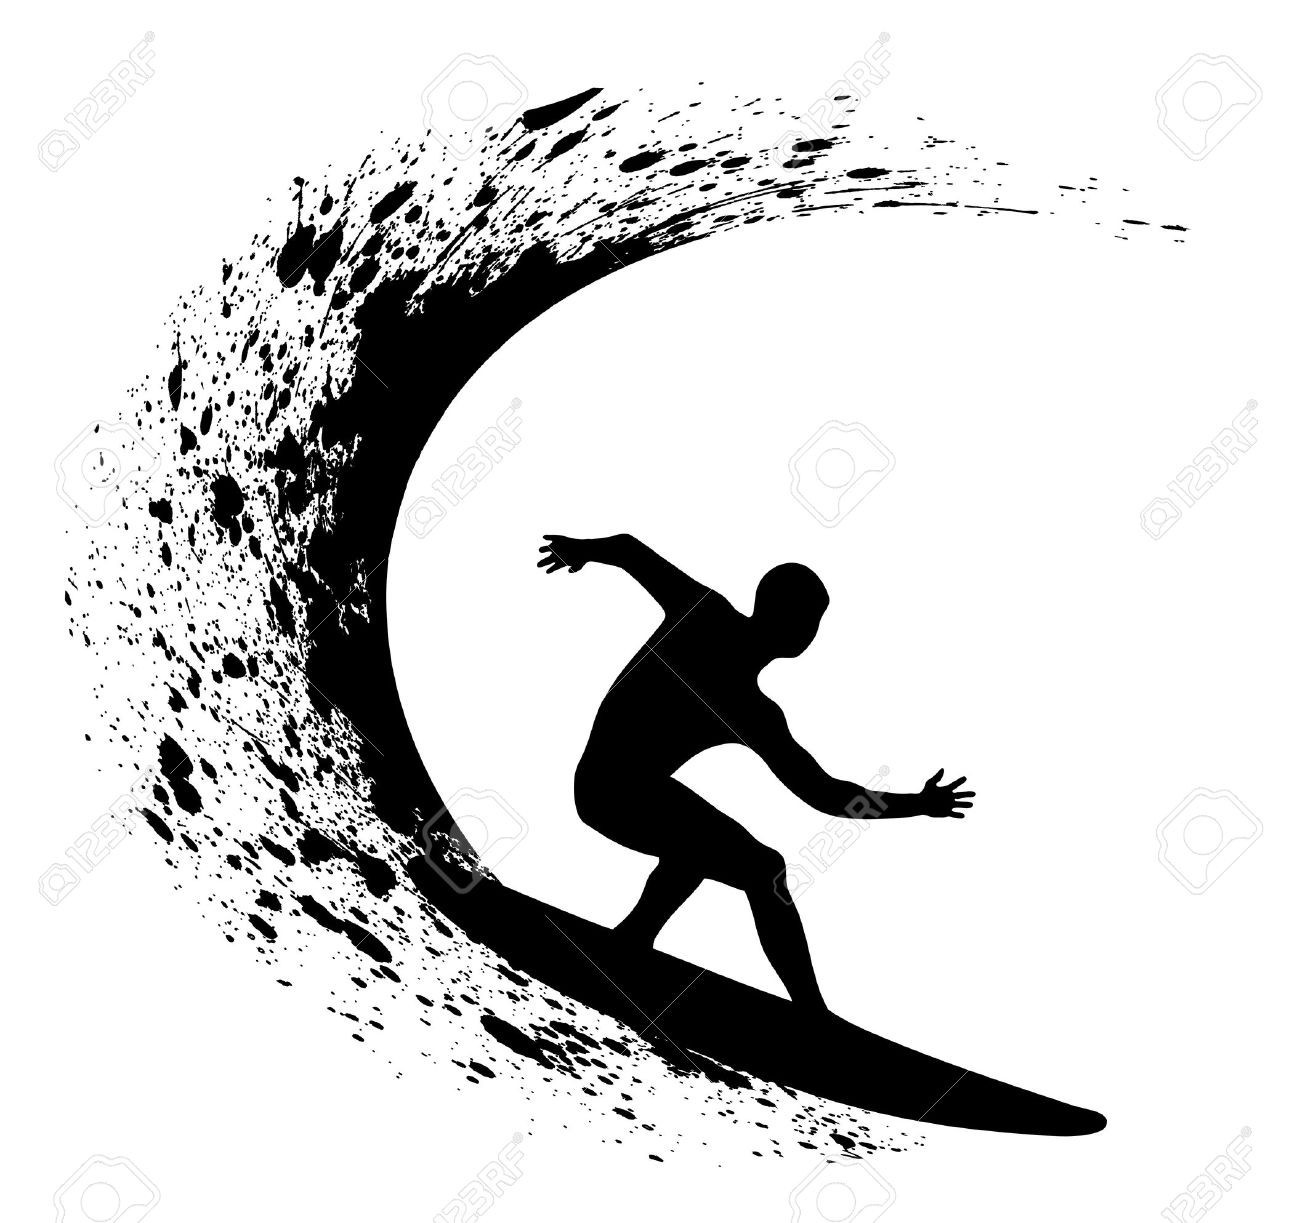 Surfing clipart black and white clipart transparent Surfer Clipart | salaharness.org clipart transparent